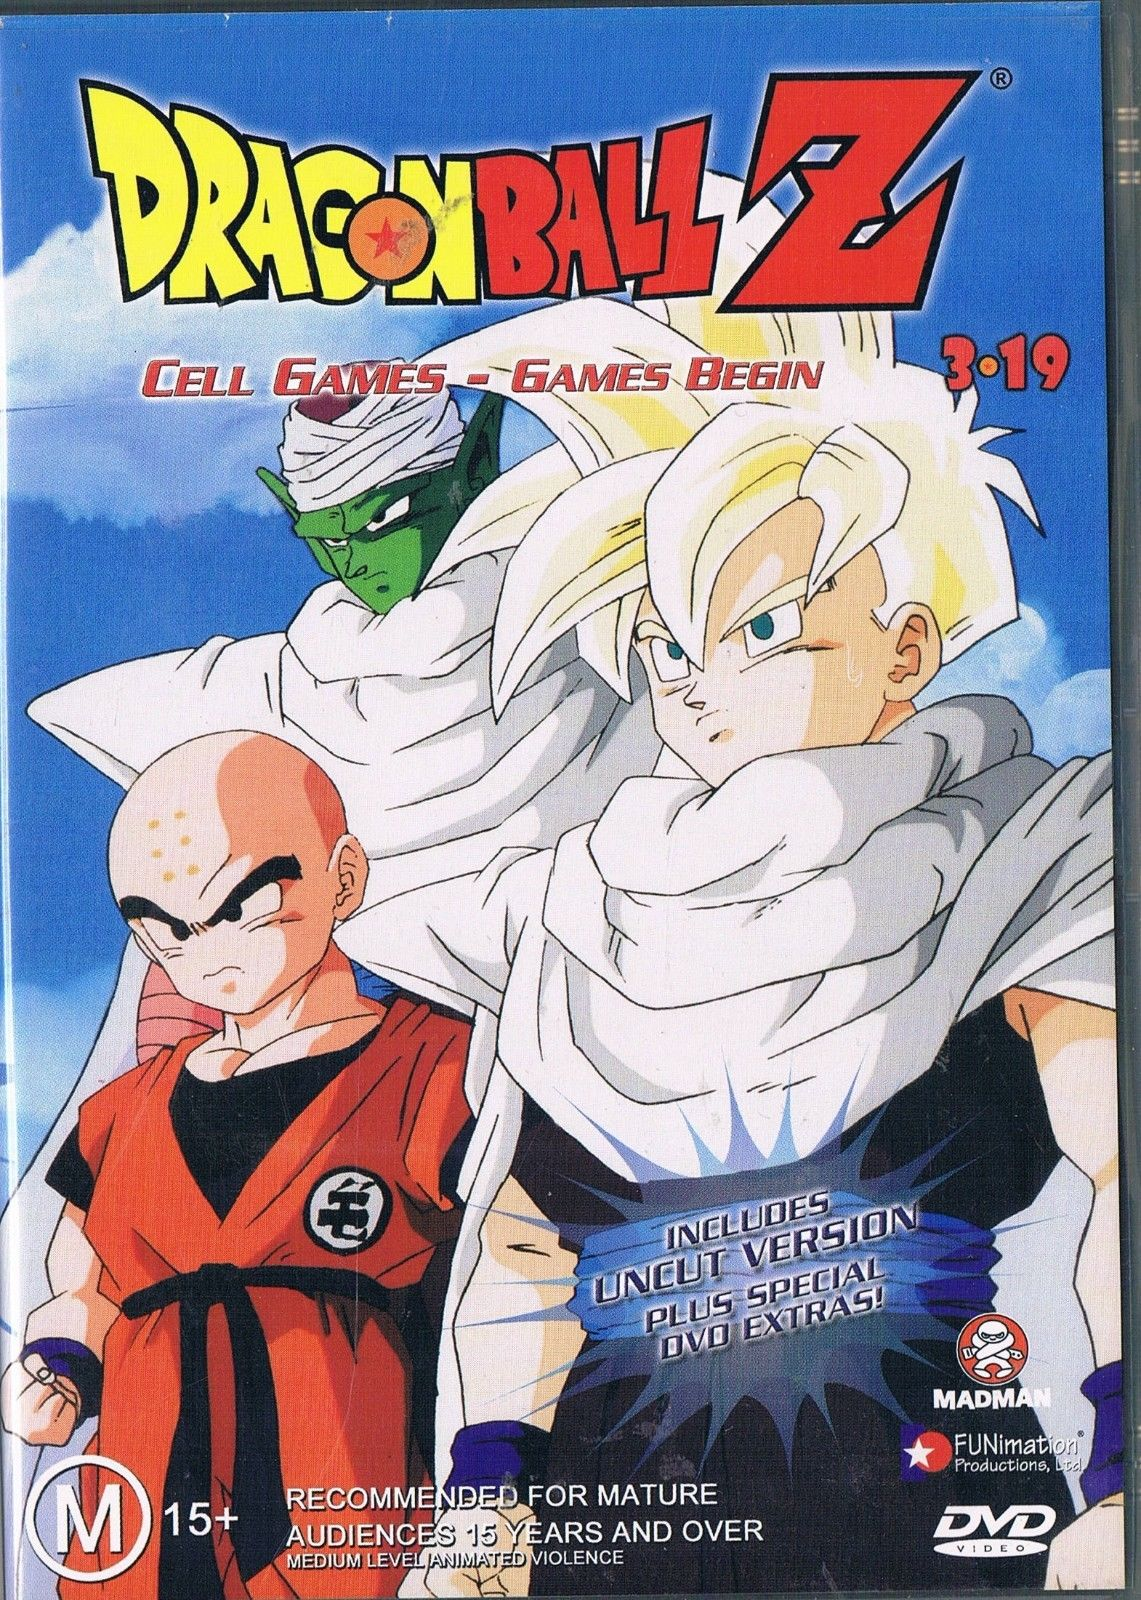 DVD - Dragon Ball Z 3.19 Cell Games : Games Begi (Preowned)